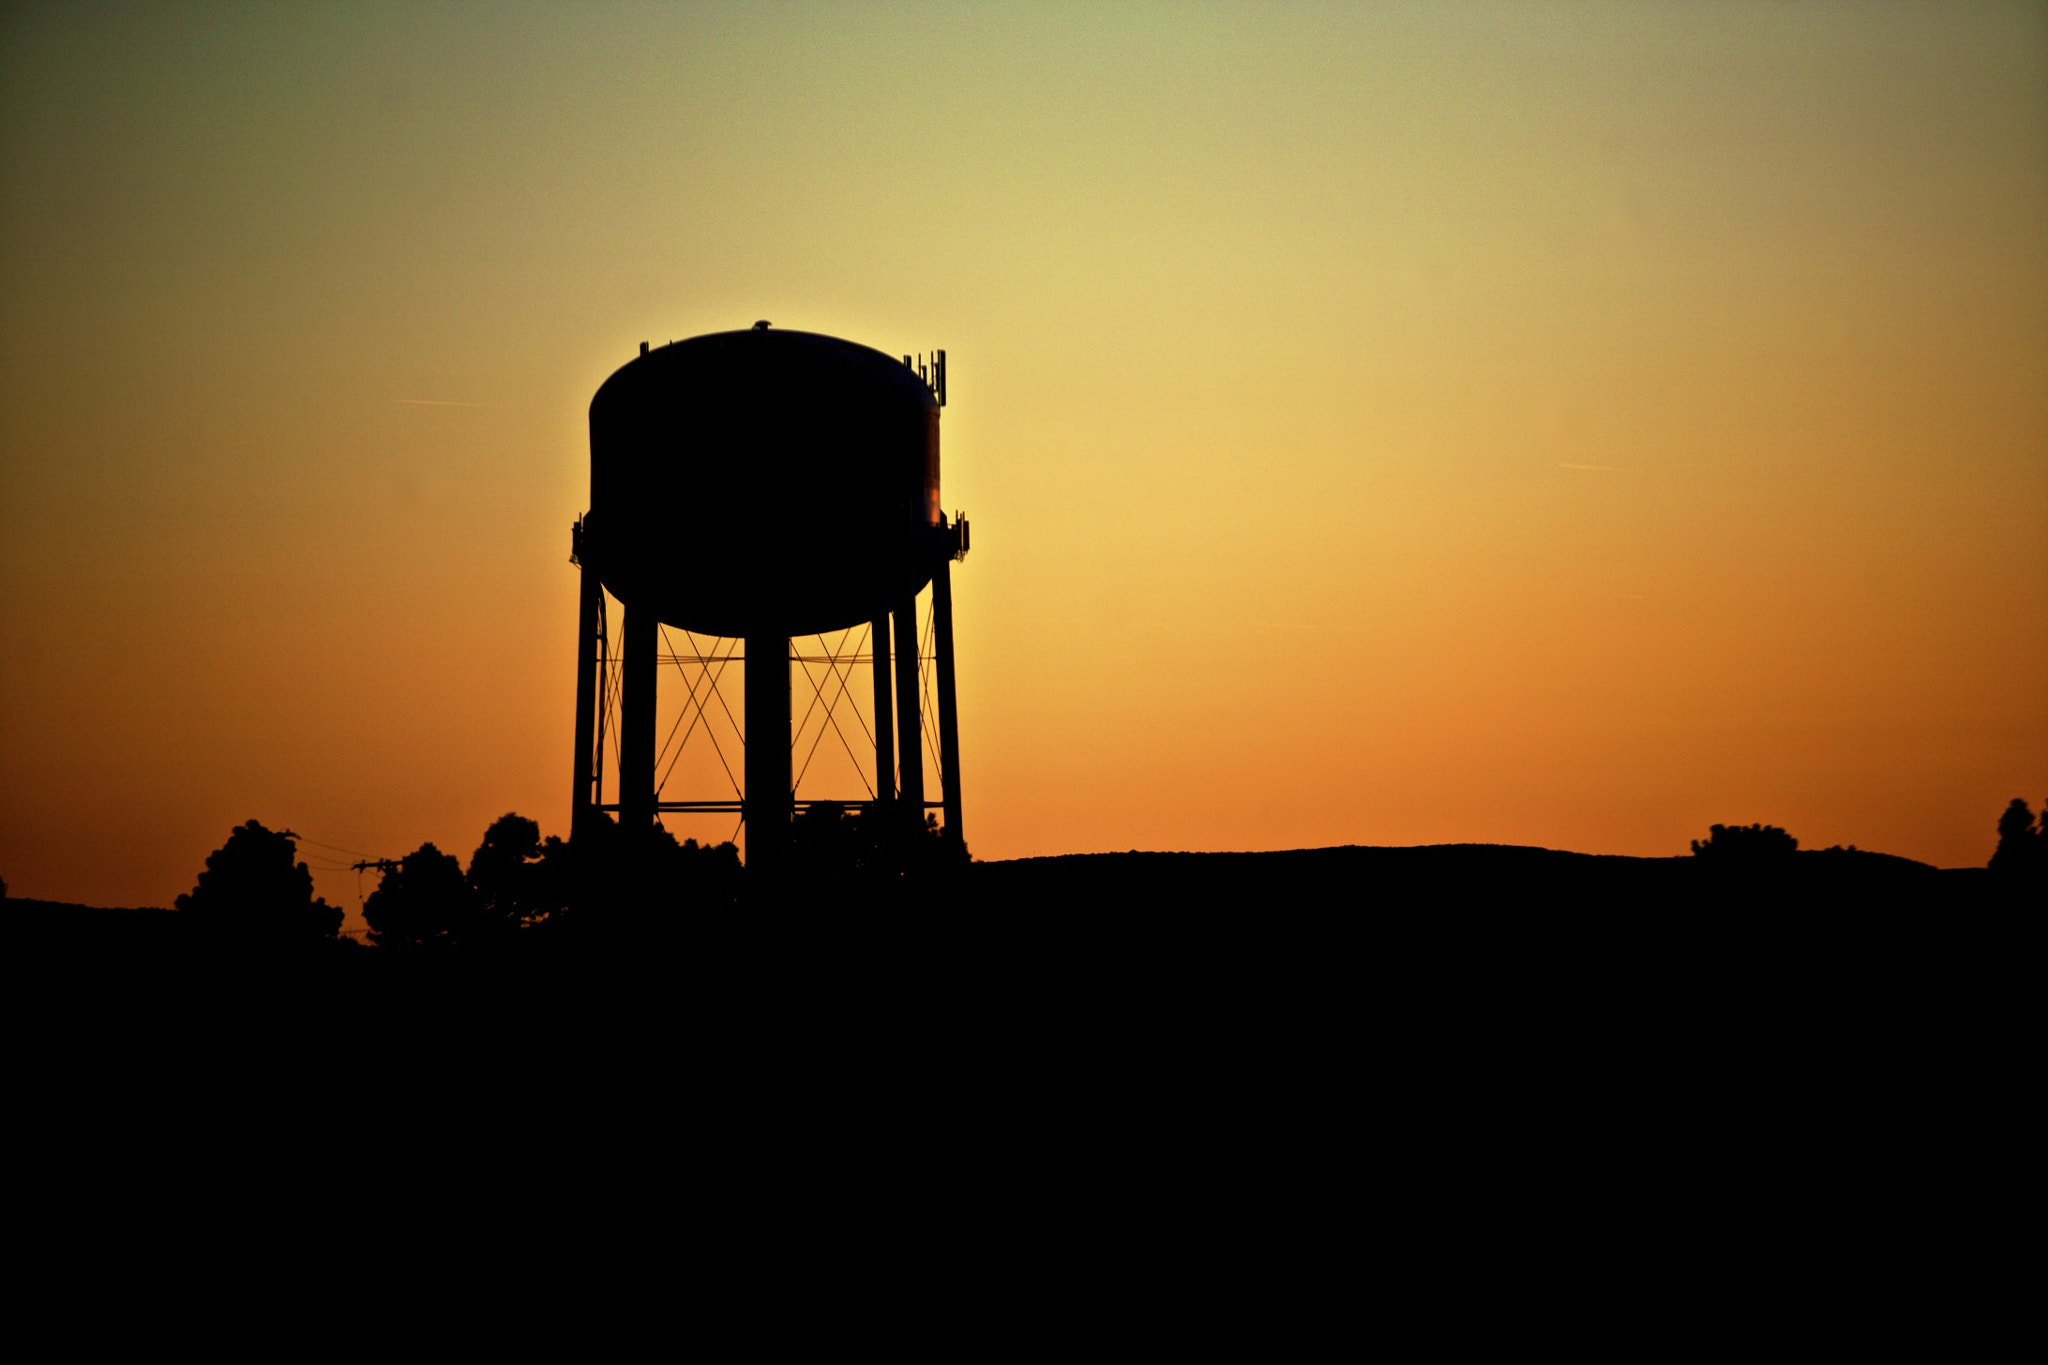 Photograph Water tower by c karakachian on 500px